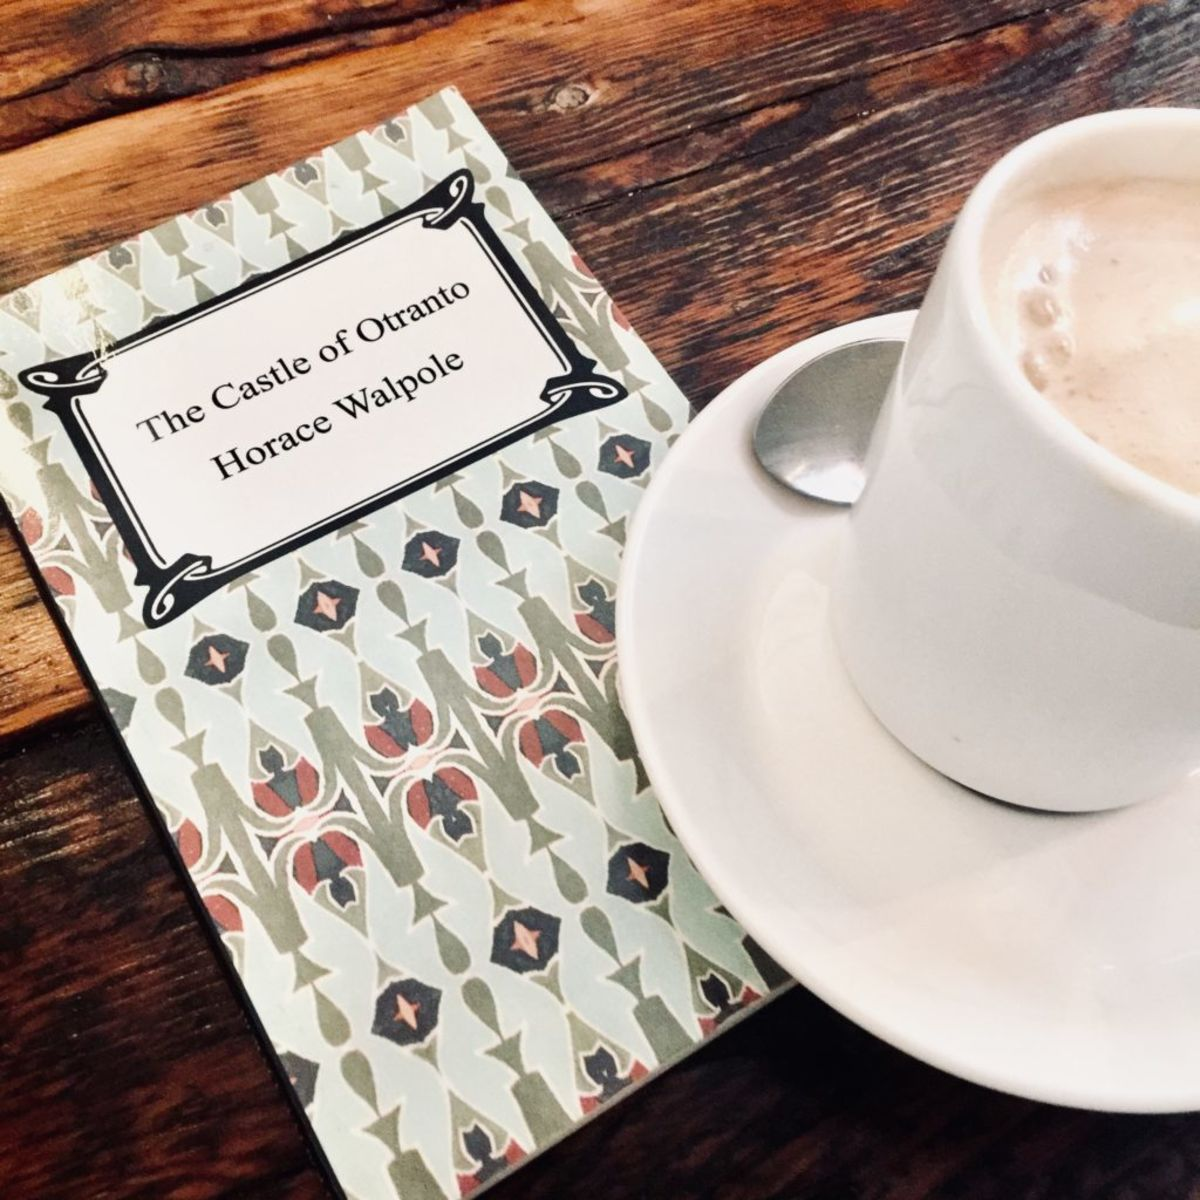 the book The Castle of Otranto with a cup of coffee